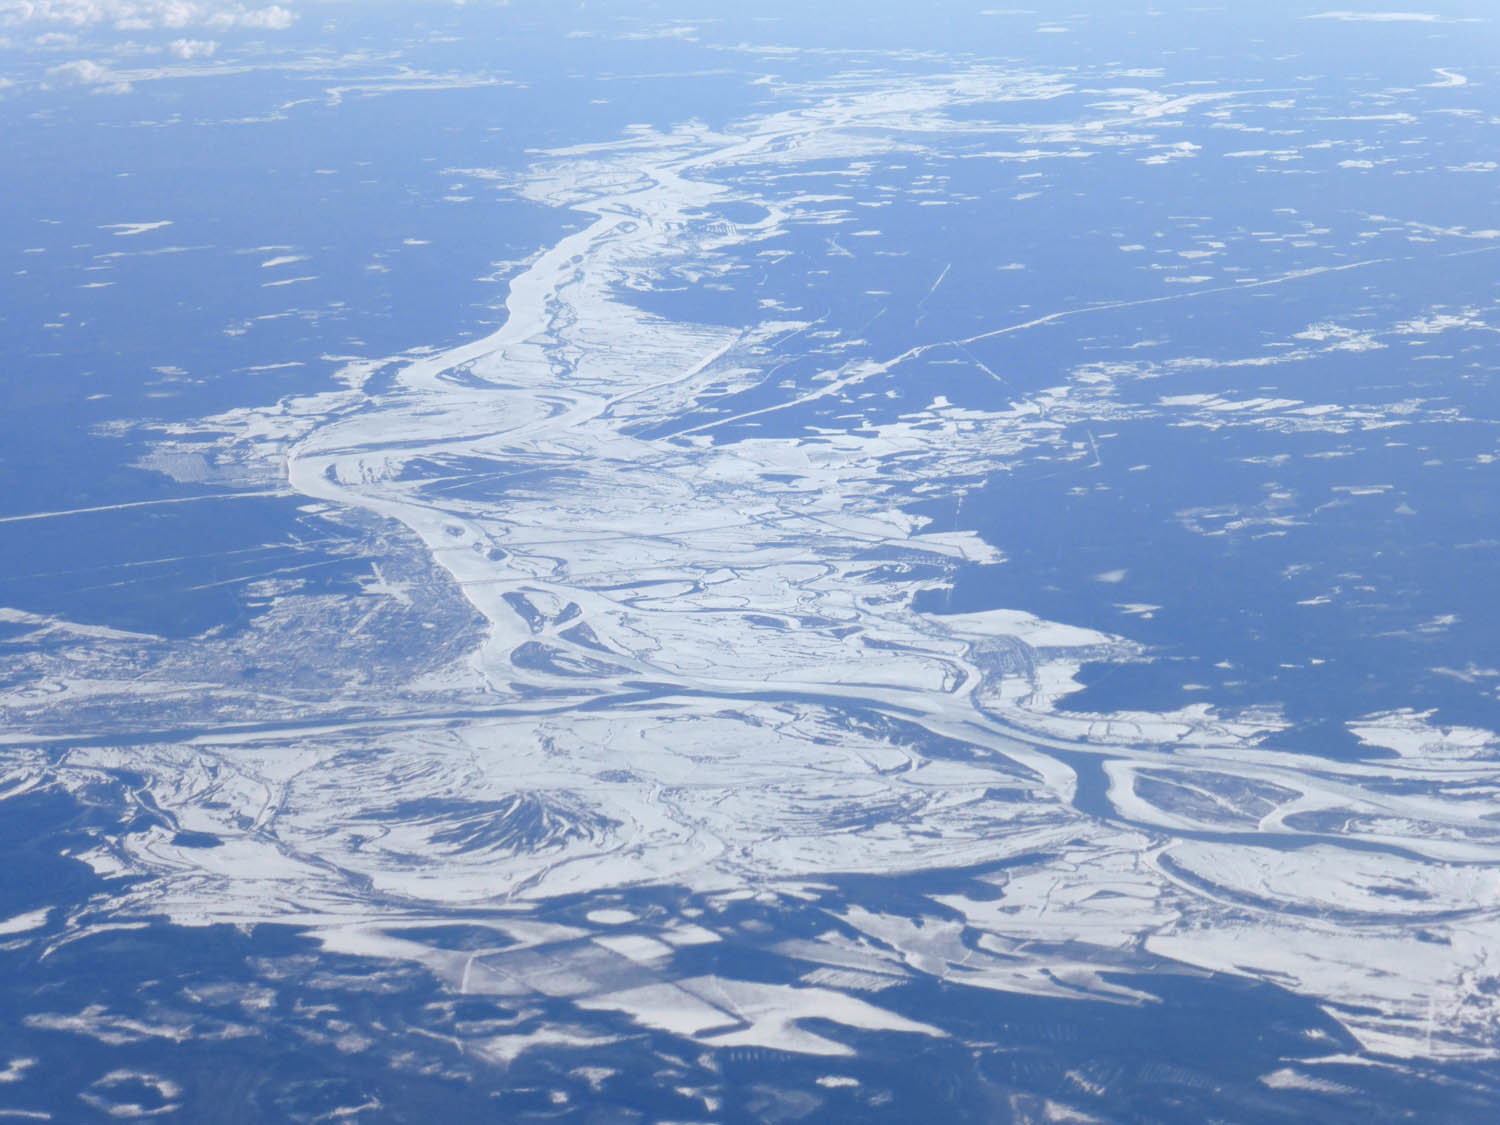 Frozen rivers and wetlands